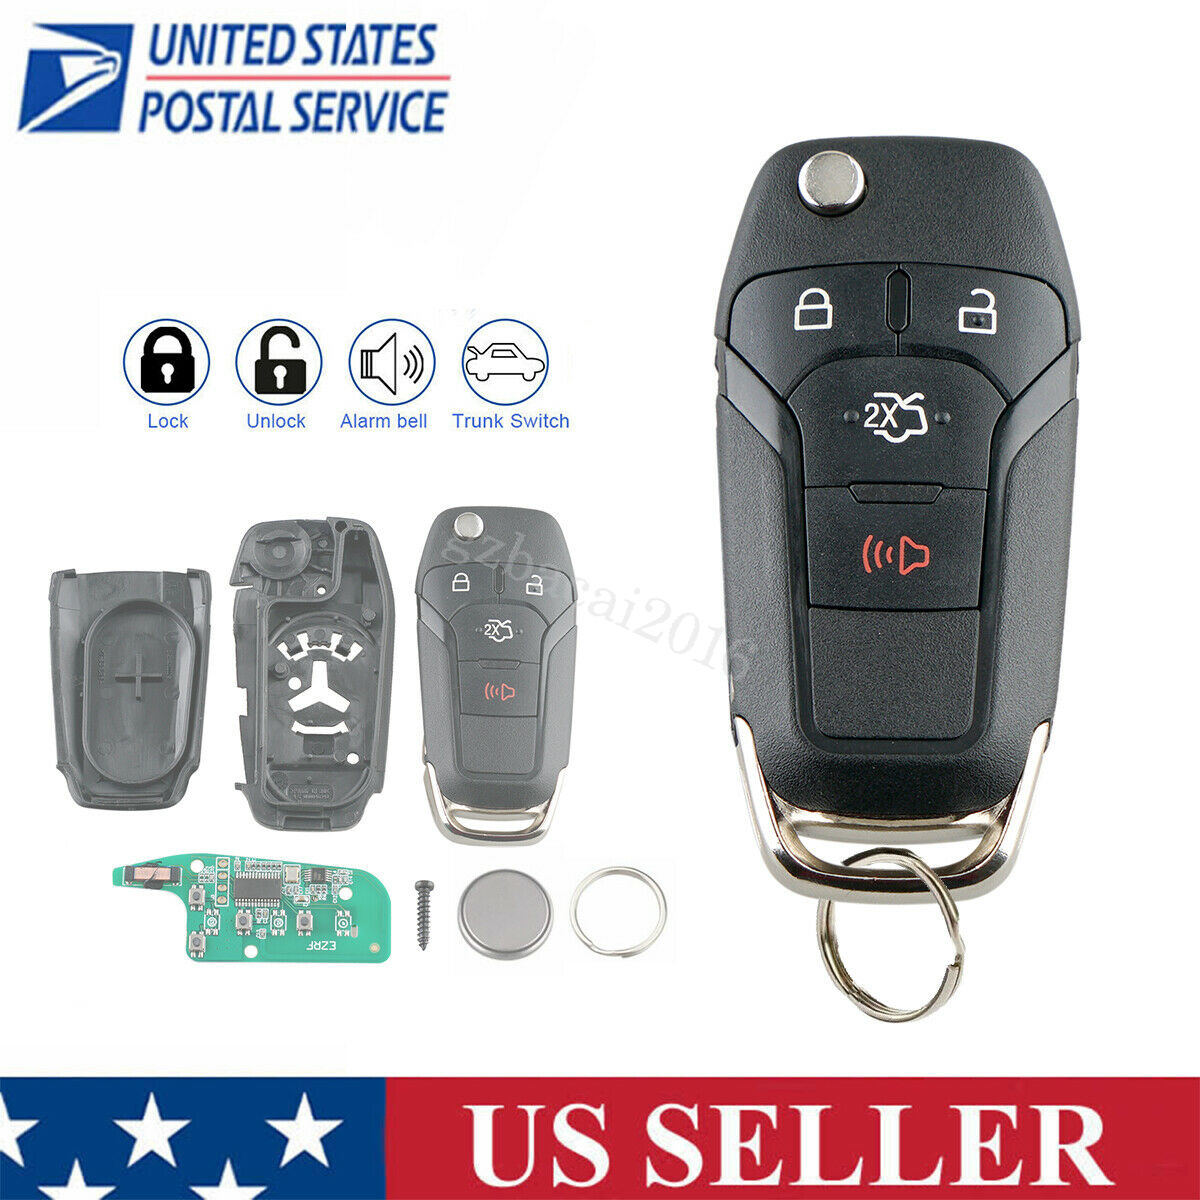 Car Key Fob Remote Case for Ford Fusion 2013 2014 2015 2016 Replaces 164-R7986 N5F-A08TAA 5924003 Keyless Entry Remote Control Shell